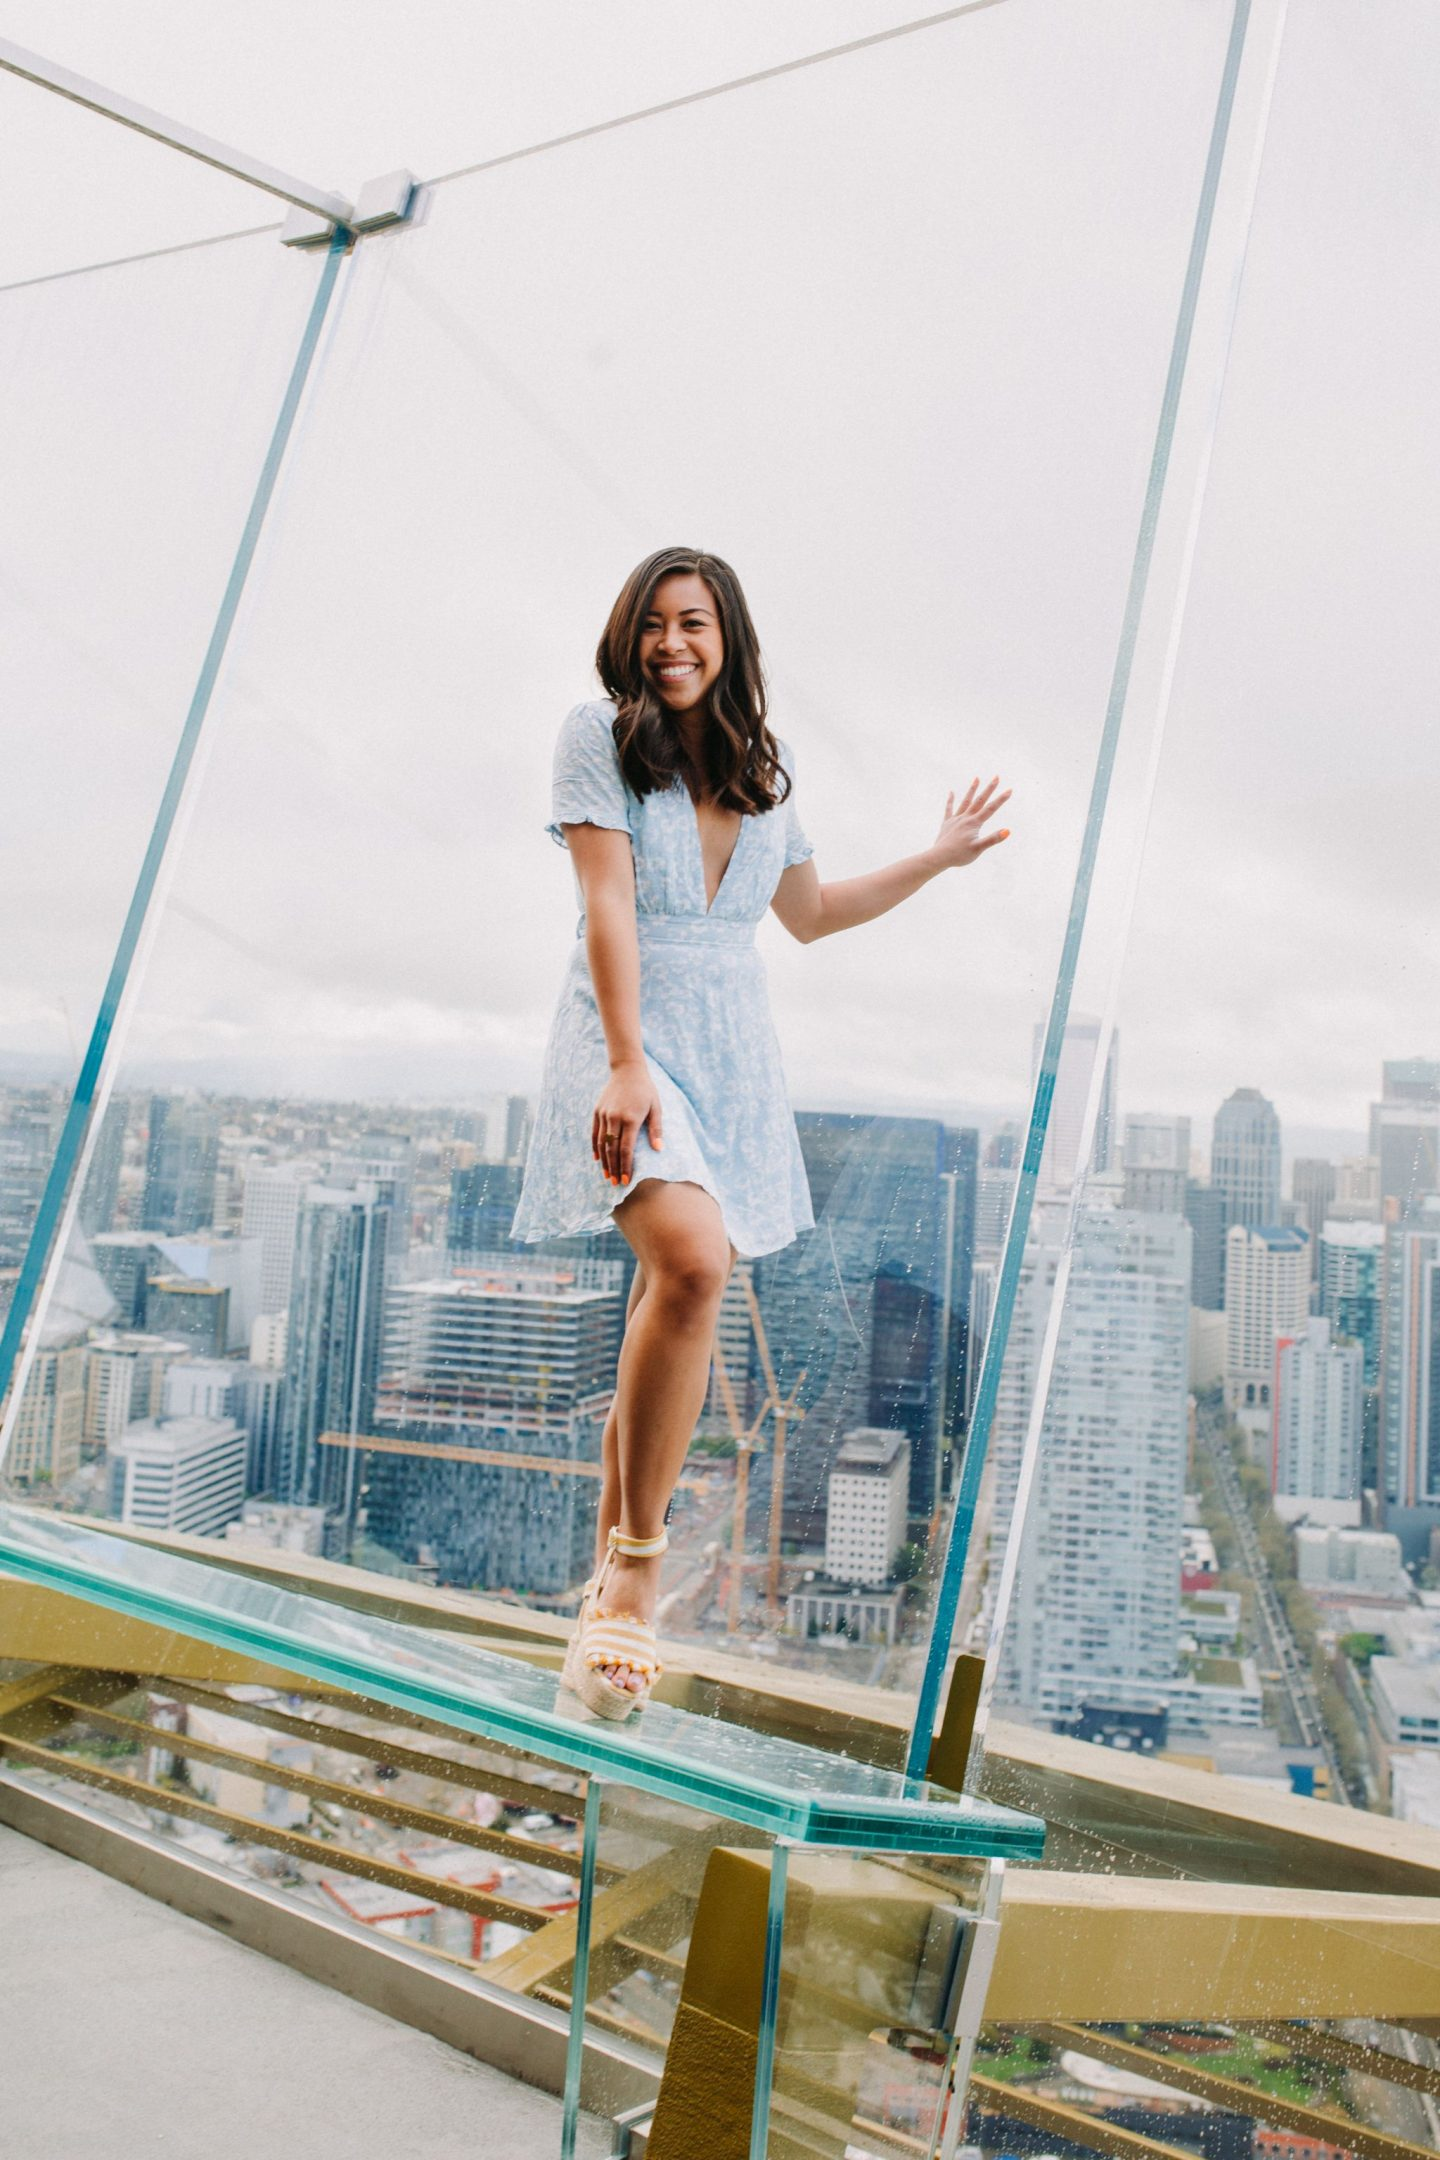 Space Needle - Instagram spots in Seattle - Things to See in Seattle